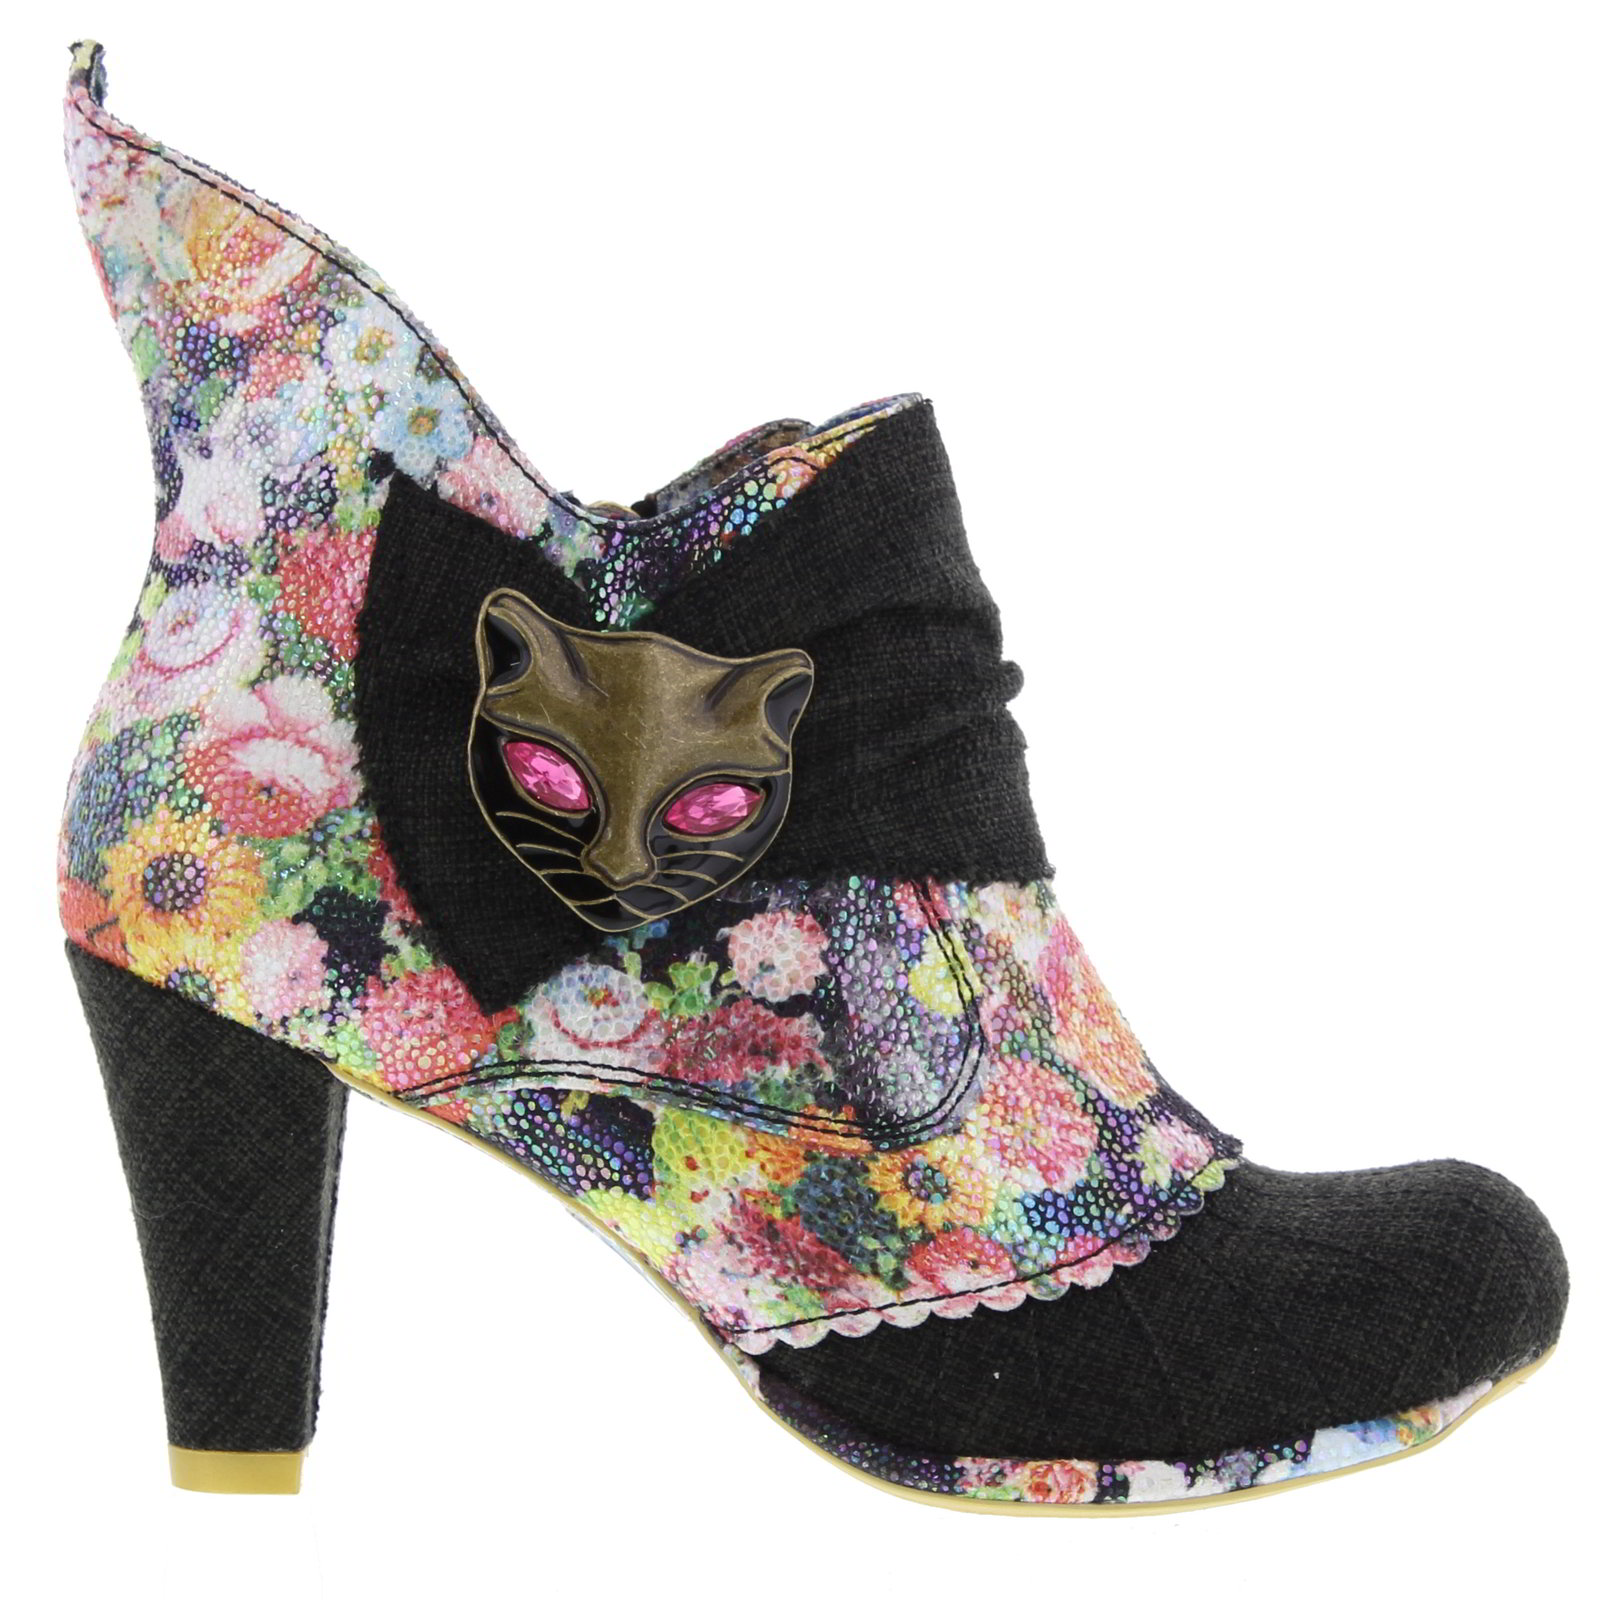 Details about Irregular Choice Miaow Womens Black High Heel Party Ankle  Boots Size UK 5 b2e47a946d80